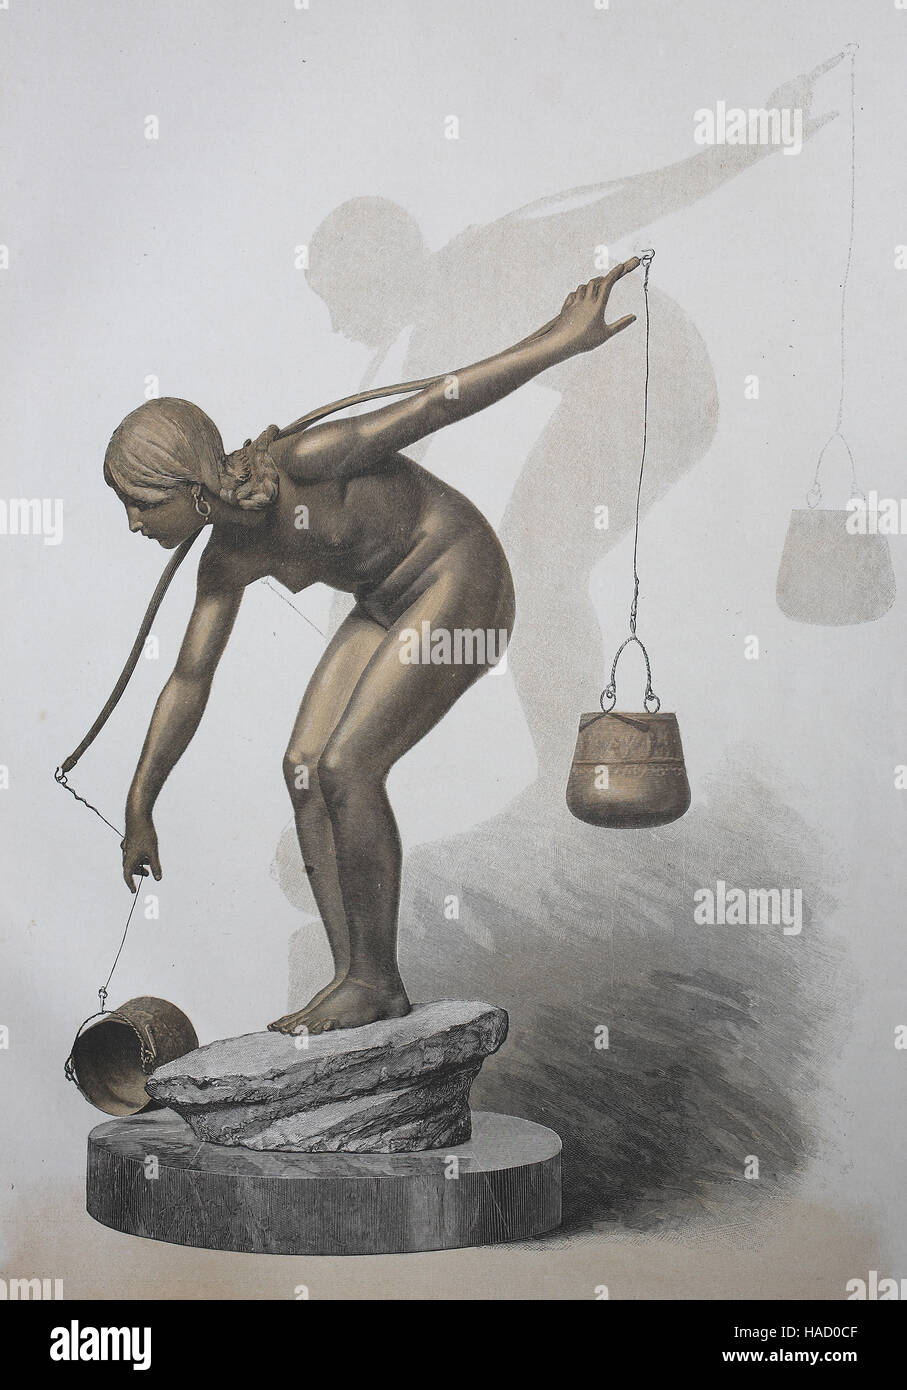 Statue of water creator, illustration published in 1880 Stock Photo